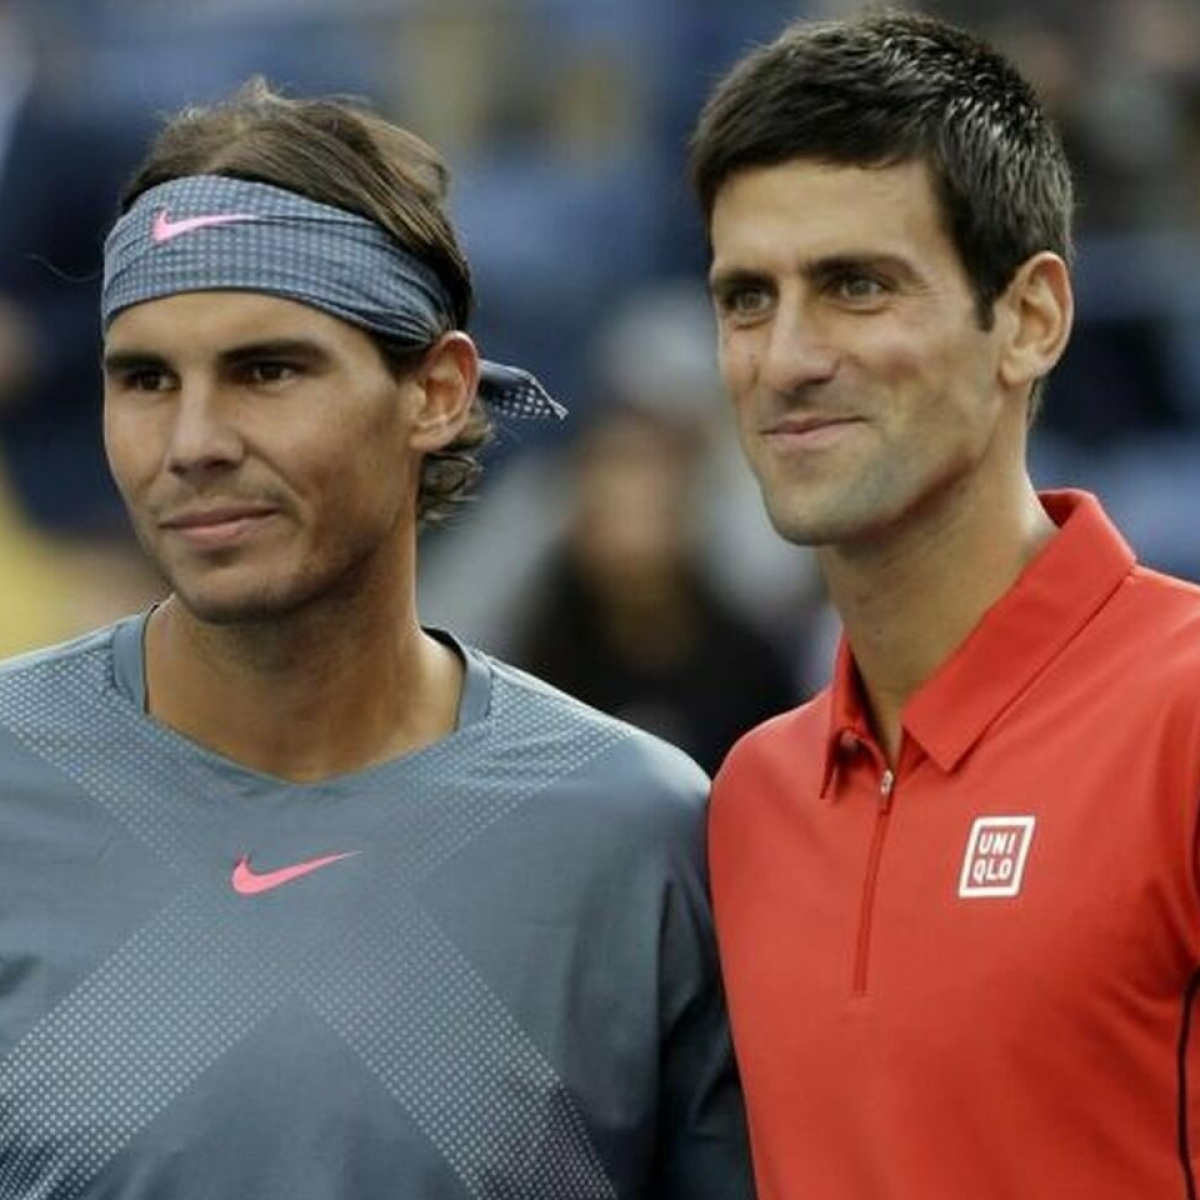 'Mentally the toughest': Novak Djokovic on Rafael Nadal